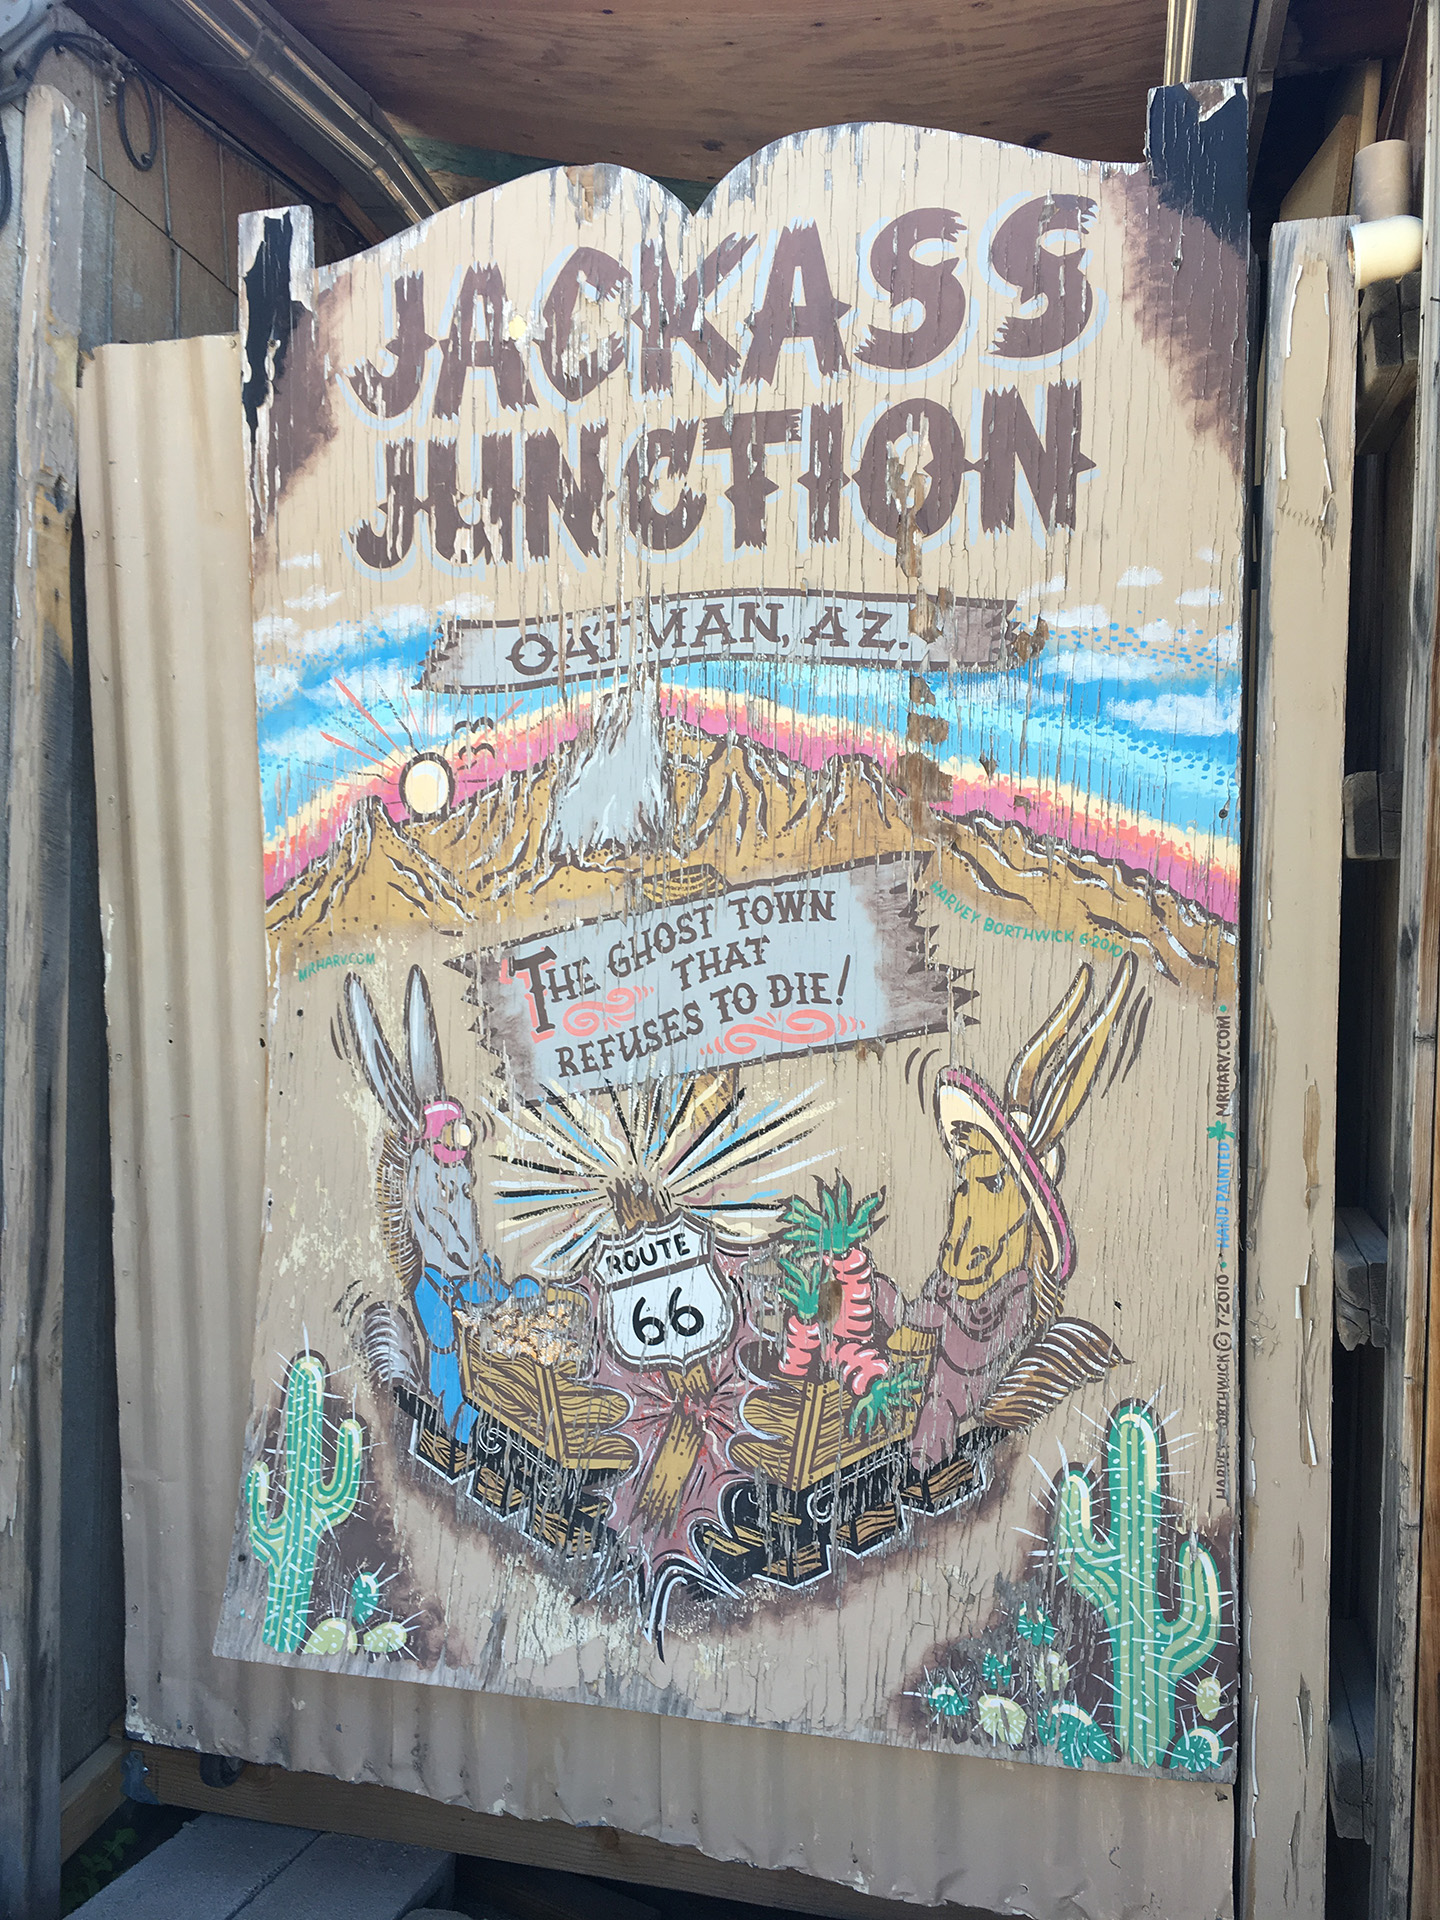 Jackass Junction